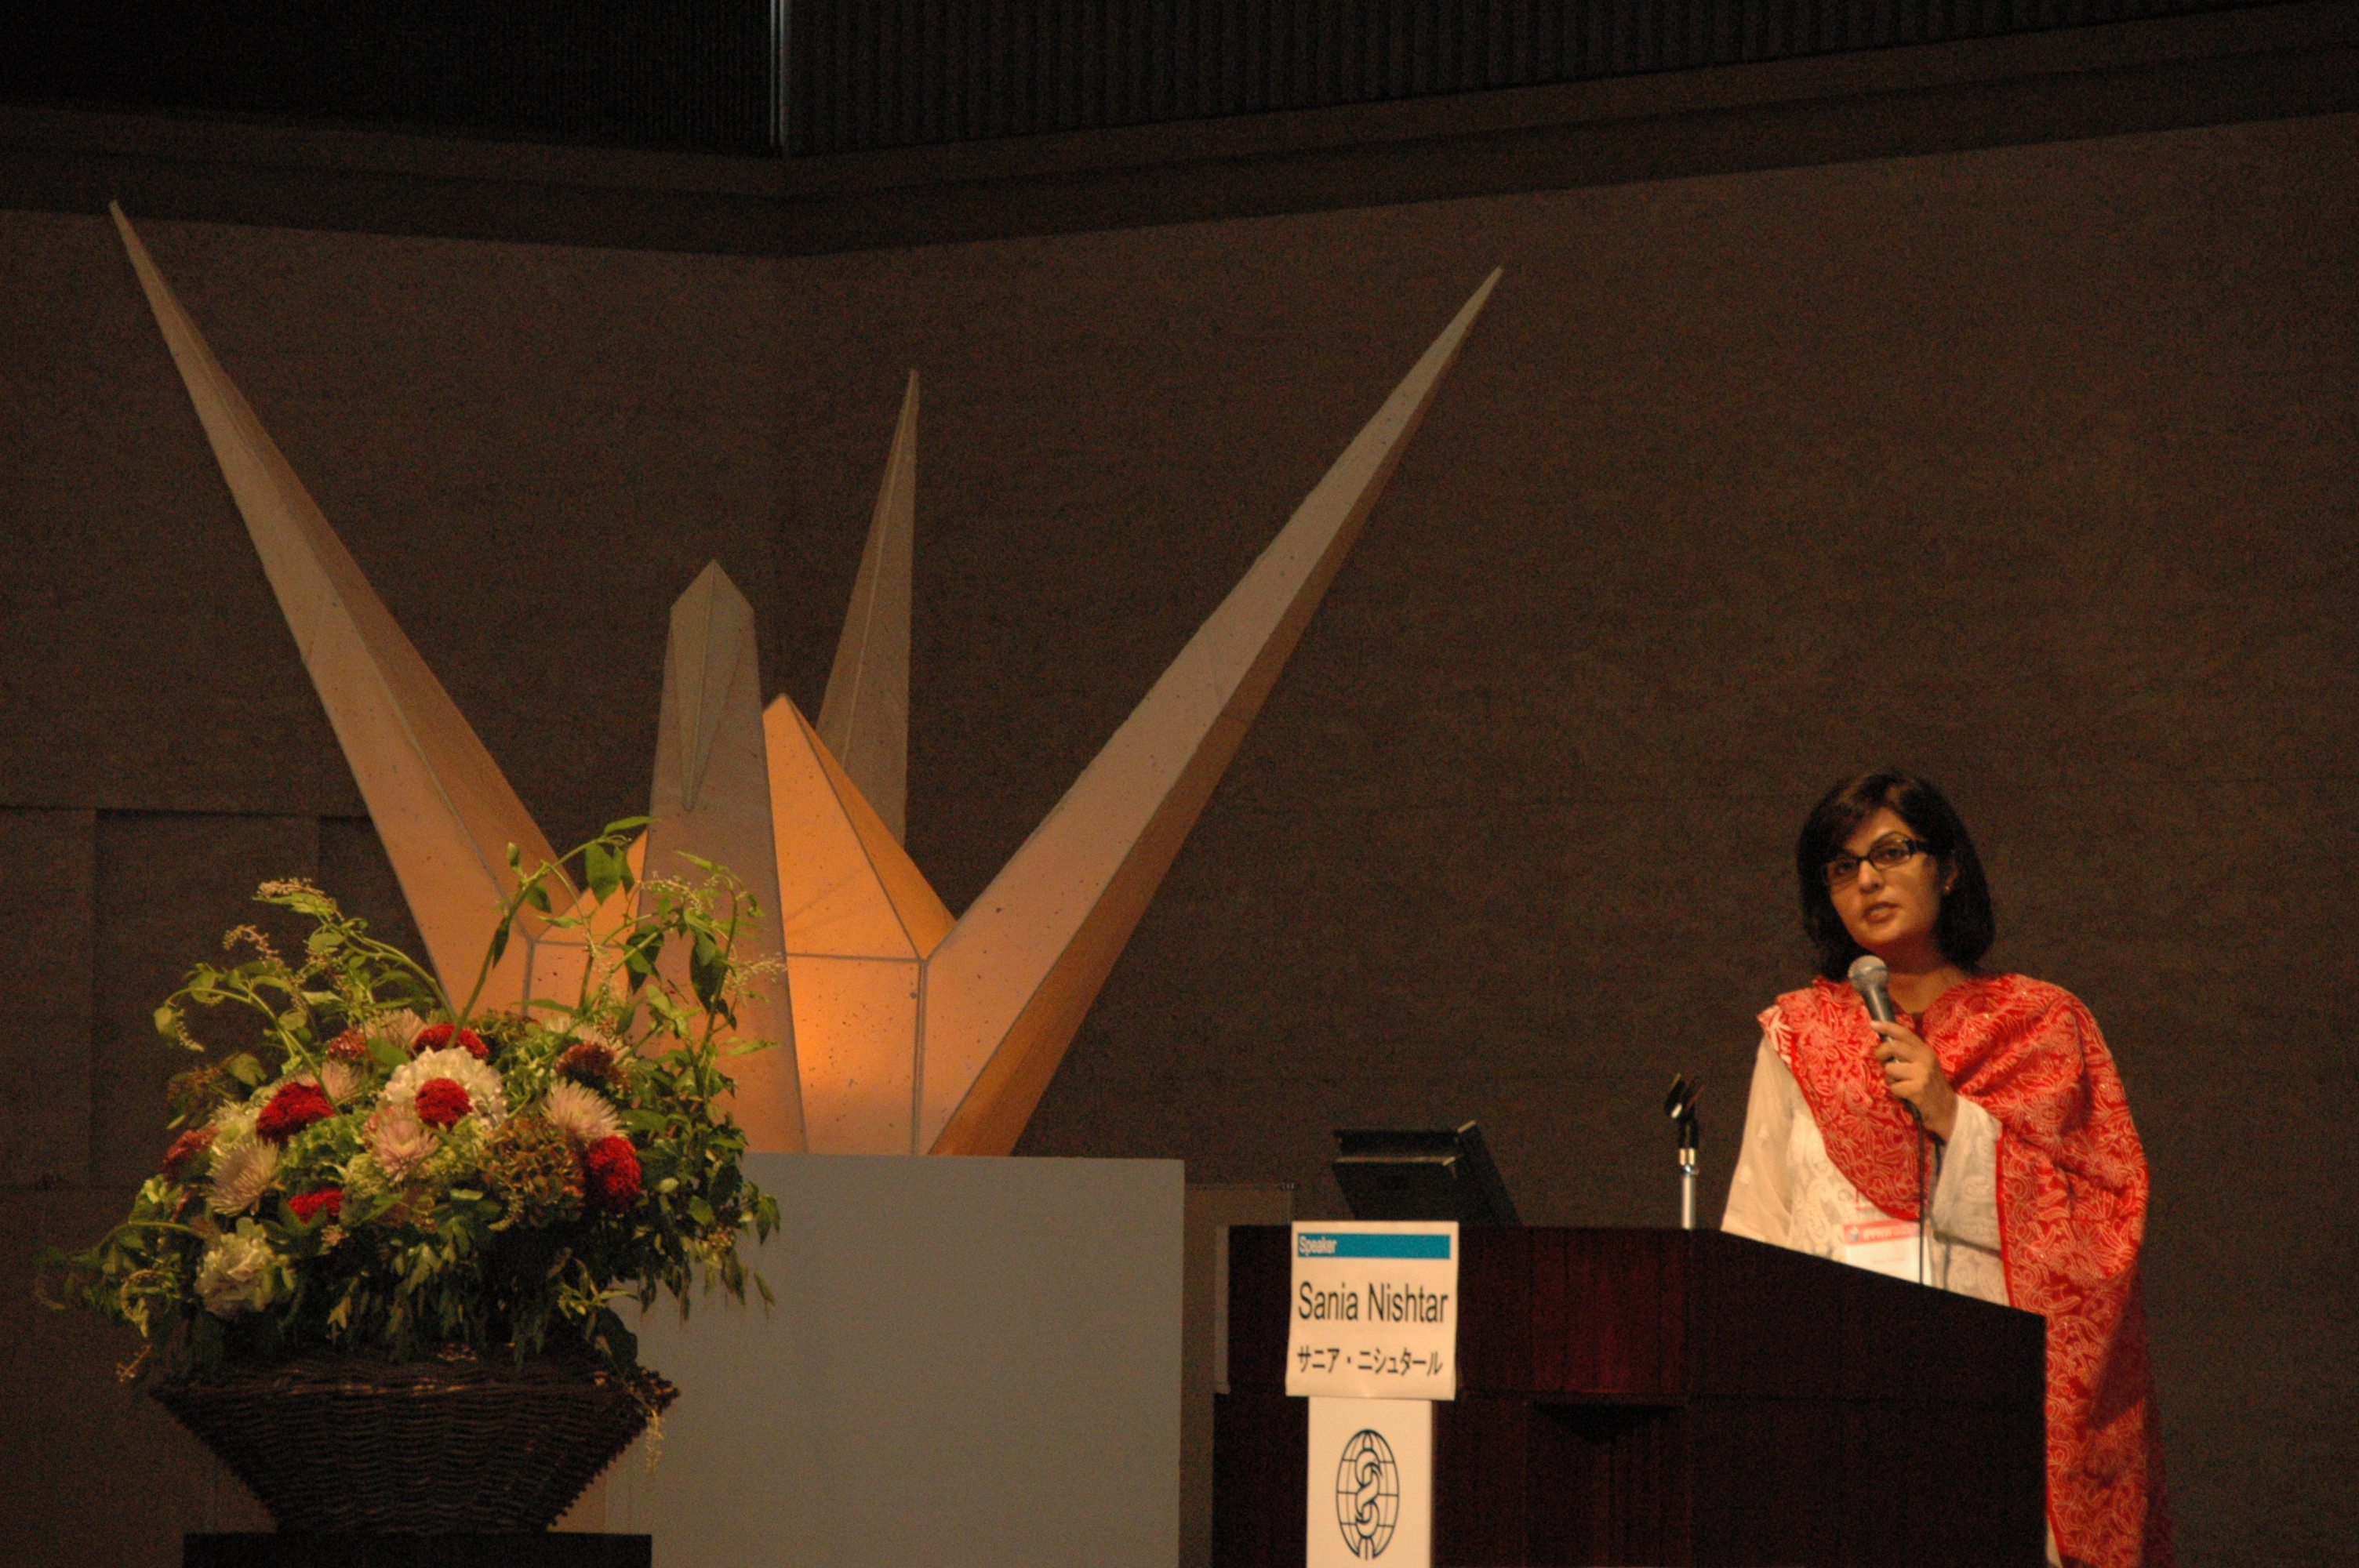 Sania Nishtar speaking at a peace conference in Hiroshma